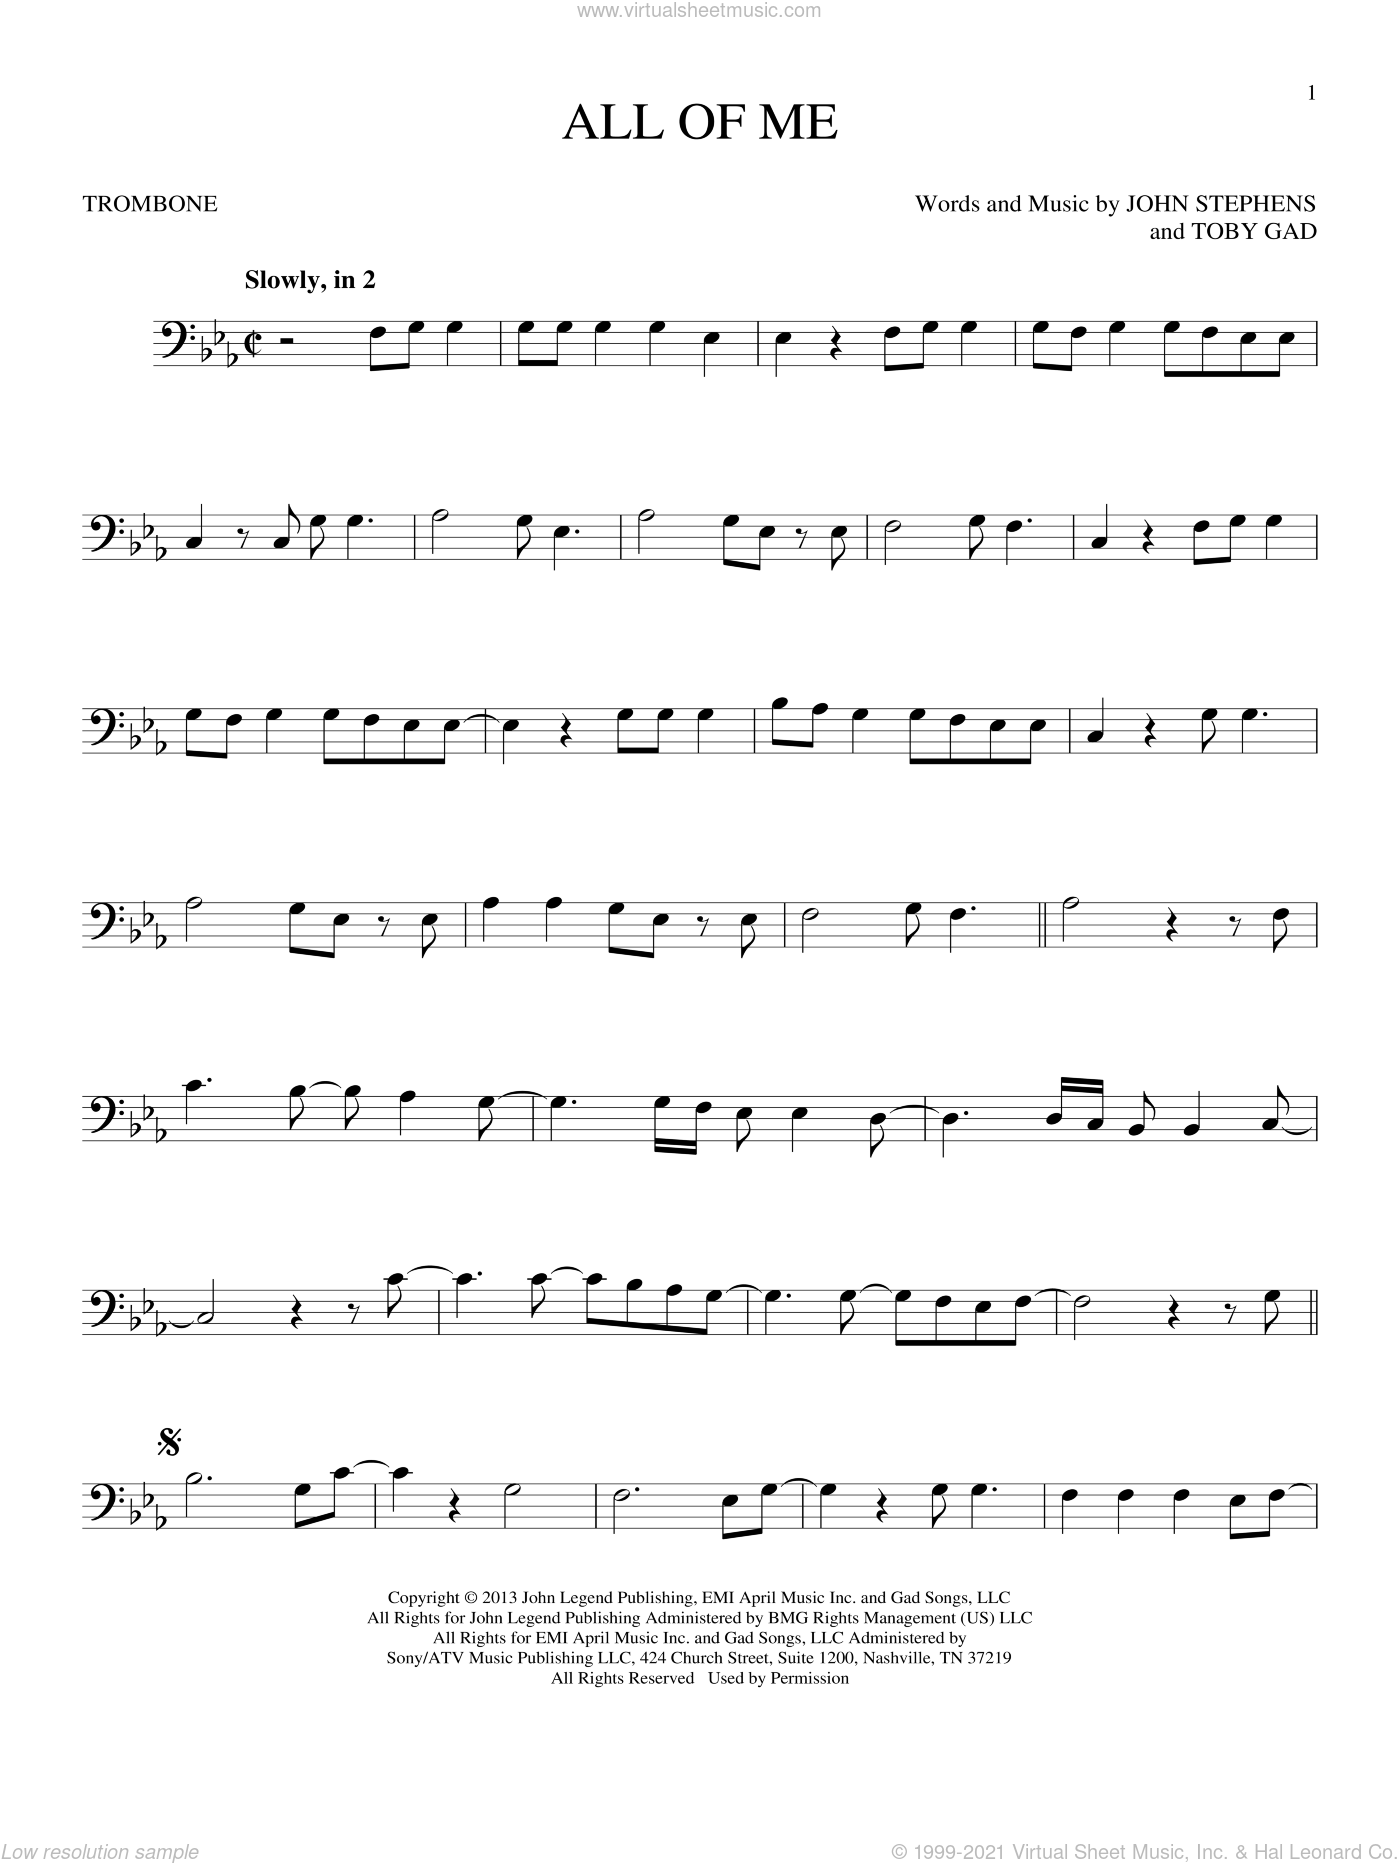 All Of Me sheet music for trombone solo by John Legend, John Stephens and Toby Gad, wedding score, intermediate skill level